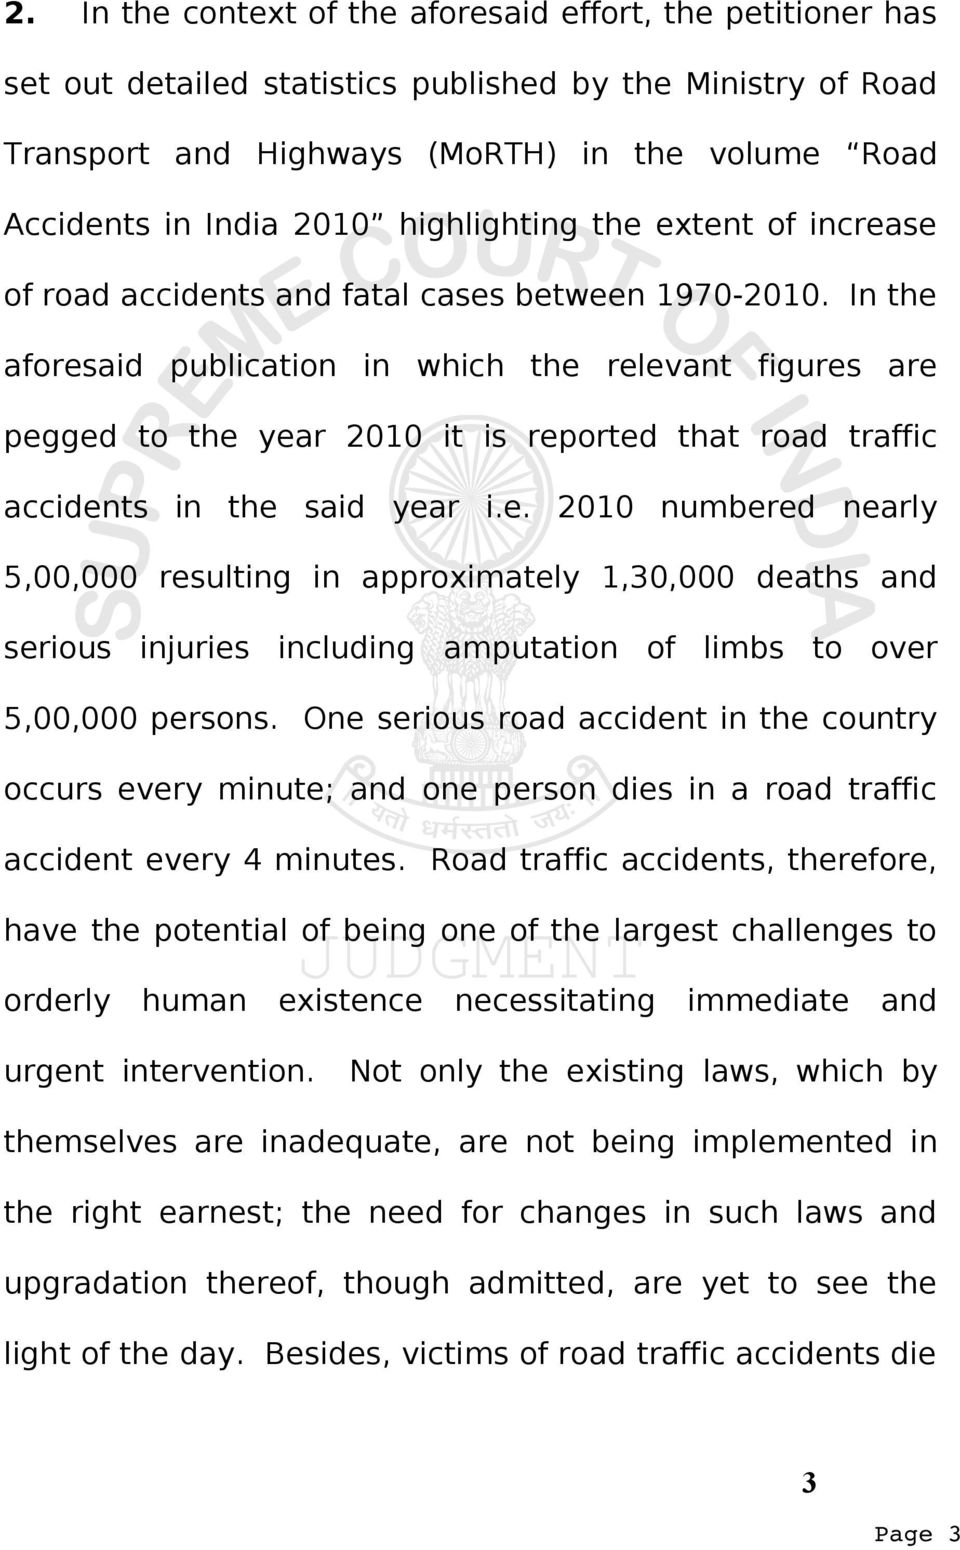 In the aforesaid publication in which the relevant figures are pegged to the year 2010 it is reported that road traffic accidents in the said year i.e. 2010 numbered nearly 5,00,000 resulting in approximately 1,30,000 deaths and serious injuries including amputation of limbs to over 5,00,000 persons.